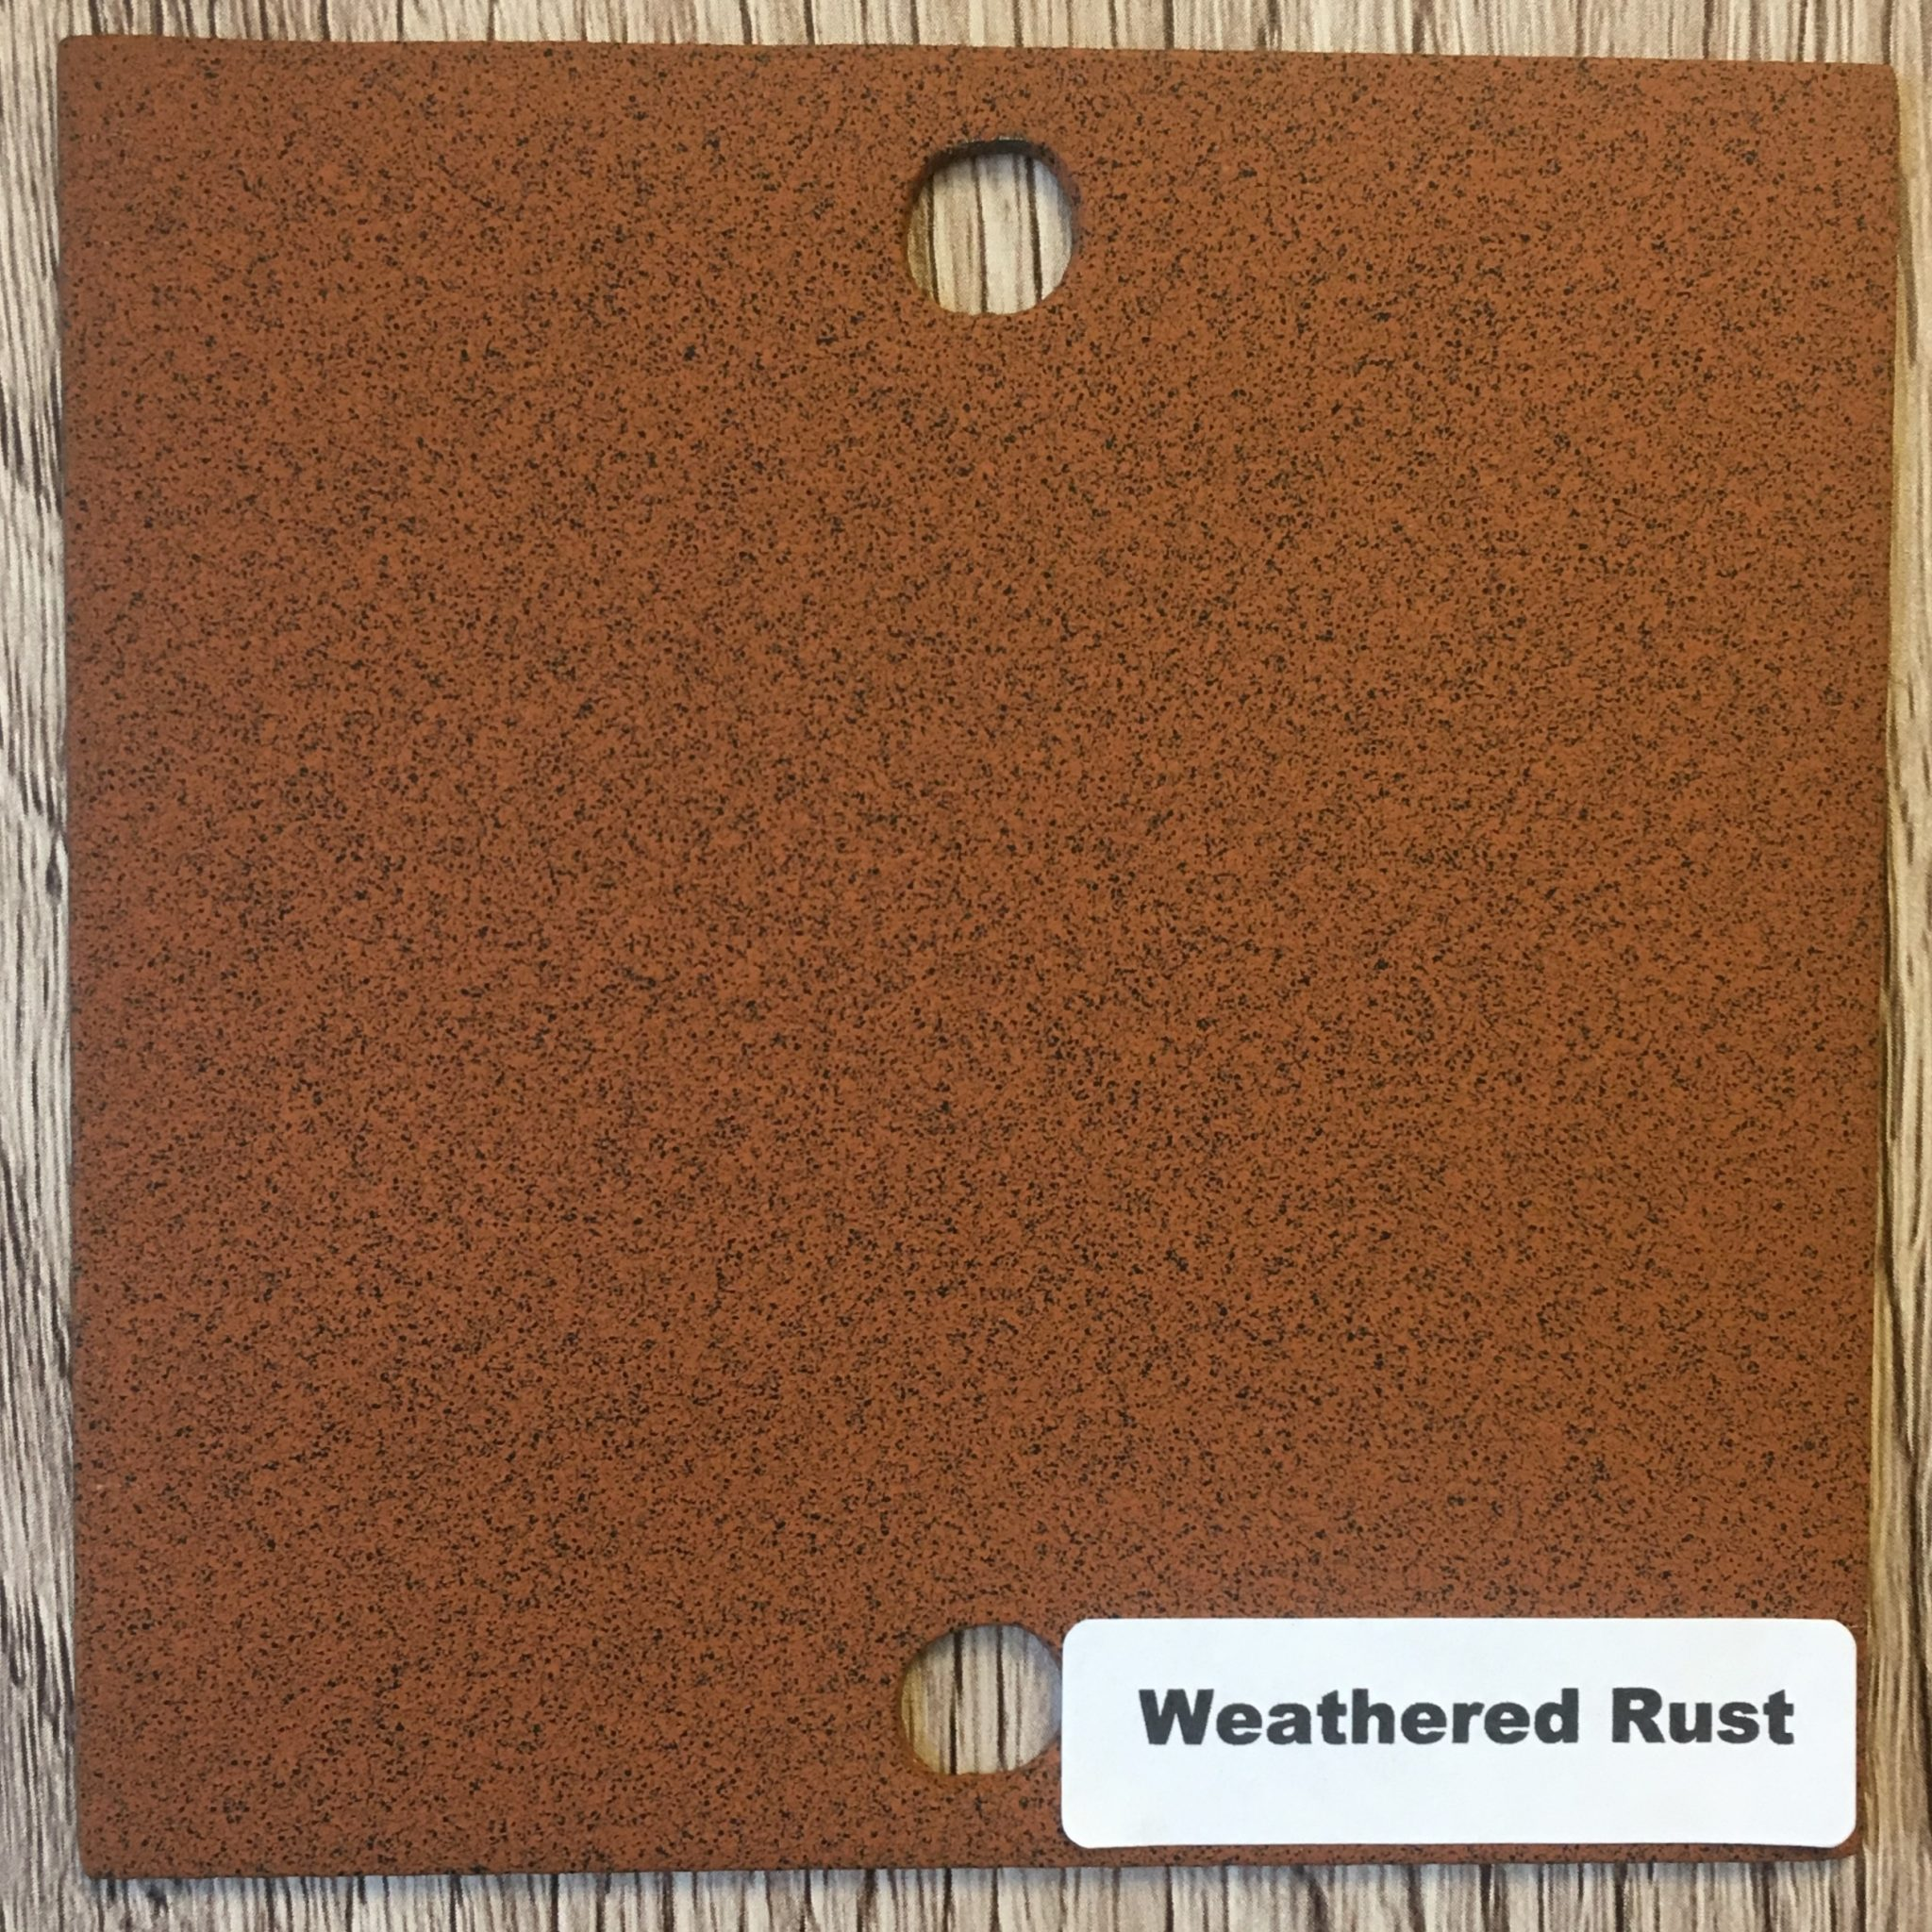 NEW - WEATHERED RUST